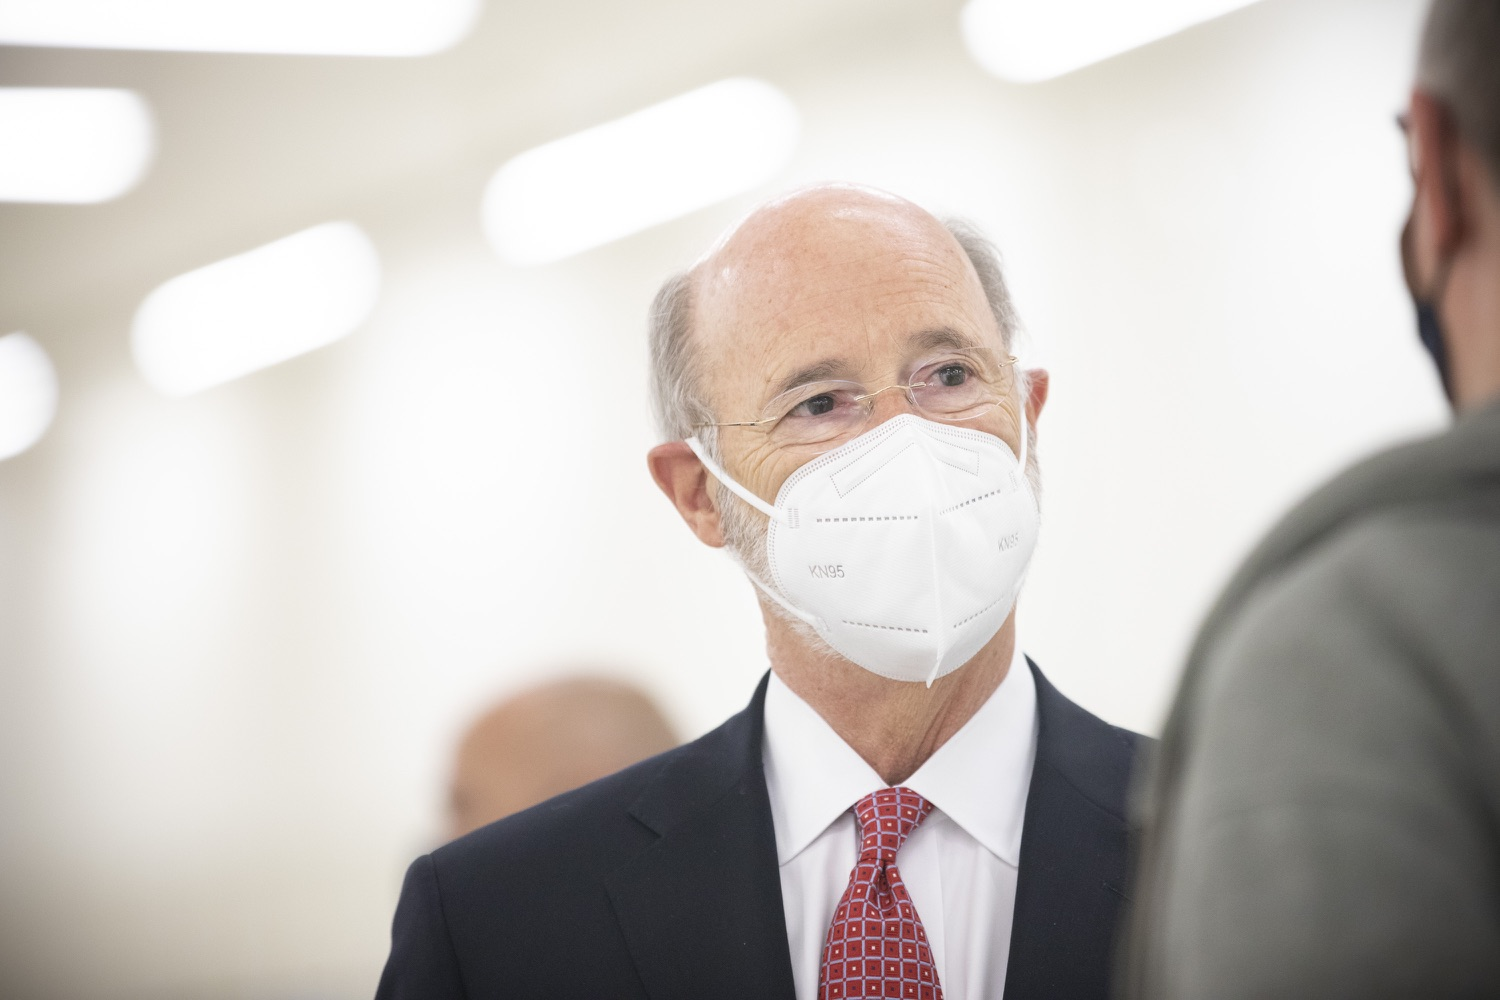 """<a href=""""https://filesource.wostreaming.net/commonwealthofpa/photo/18682_gov_vaccineClinic_dz_021.jpg"""" target=""""_blank"""">⇣Download Photo<br></a>Pennsylvania Governor Tom Wolf touring the regional vaccination clinic.   Governor Tom Wolf today visited the Guthrie Health vaccine clinic in Sayre, Bradford County today to tour this clinic providing vaccines to a large swath of rural residents and to talk about progress in vaccinating Pennsylvanians now that eligibility is open to all individuals age 16 and older.  Sayre, PA   April 21, 2021"""